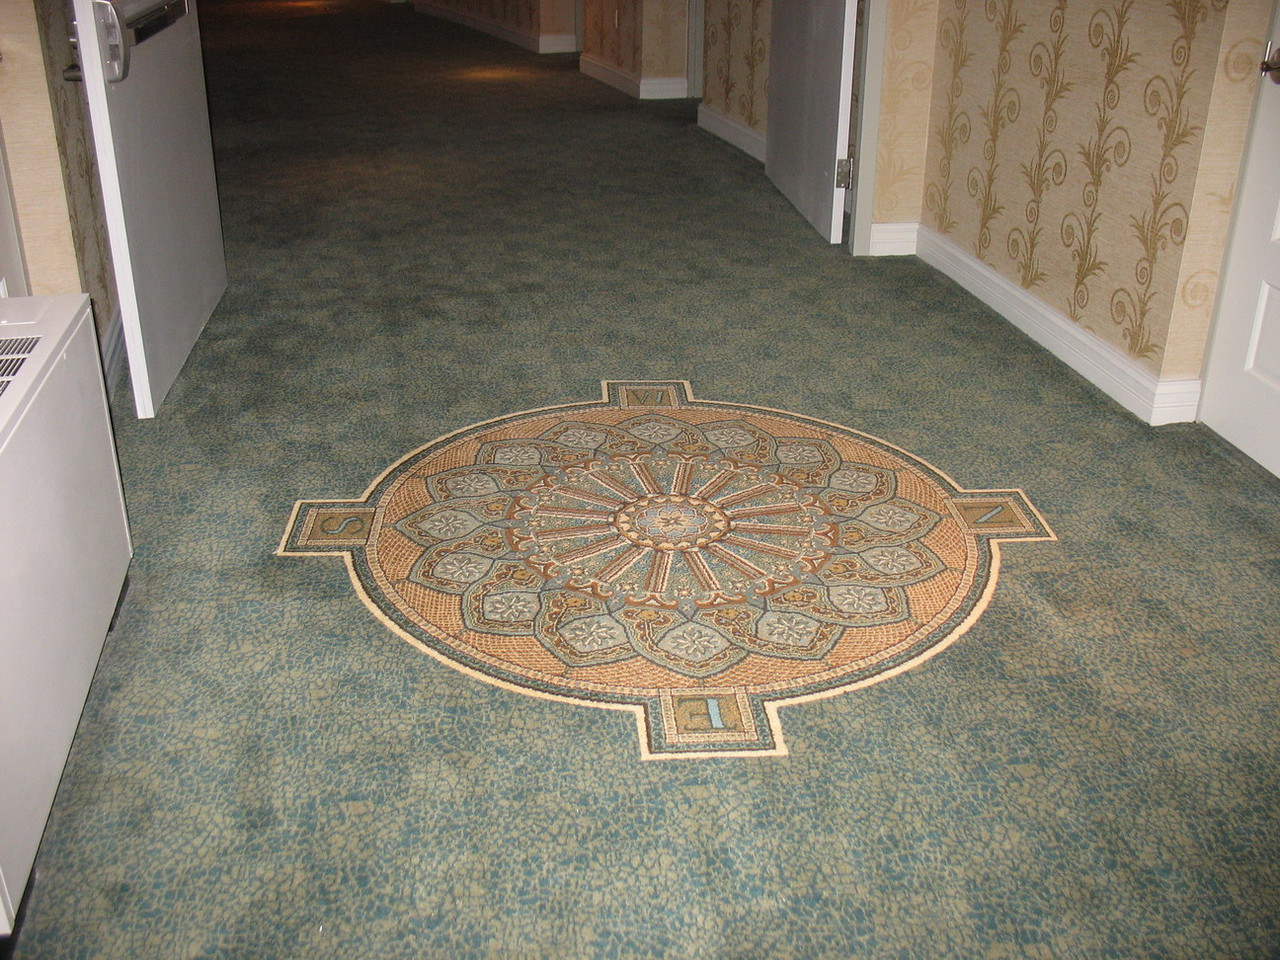 A compass in the carpet in the hall way outside the door to our room.